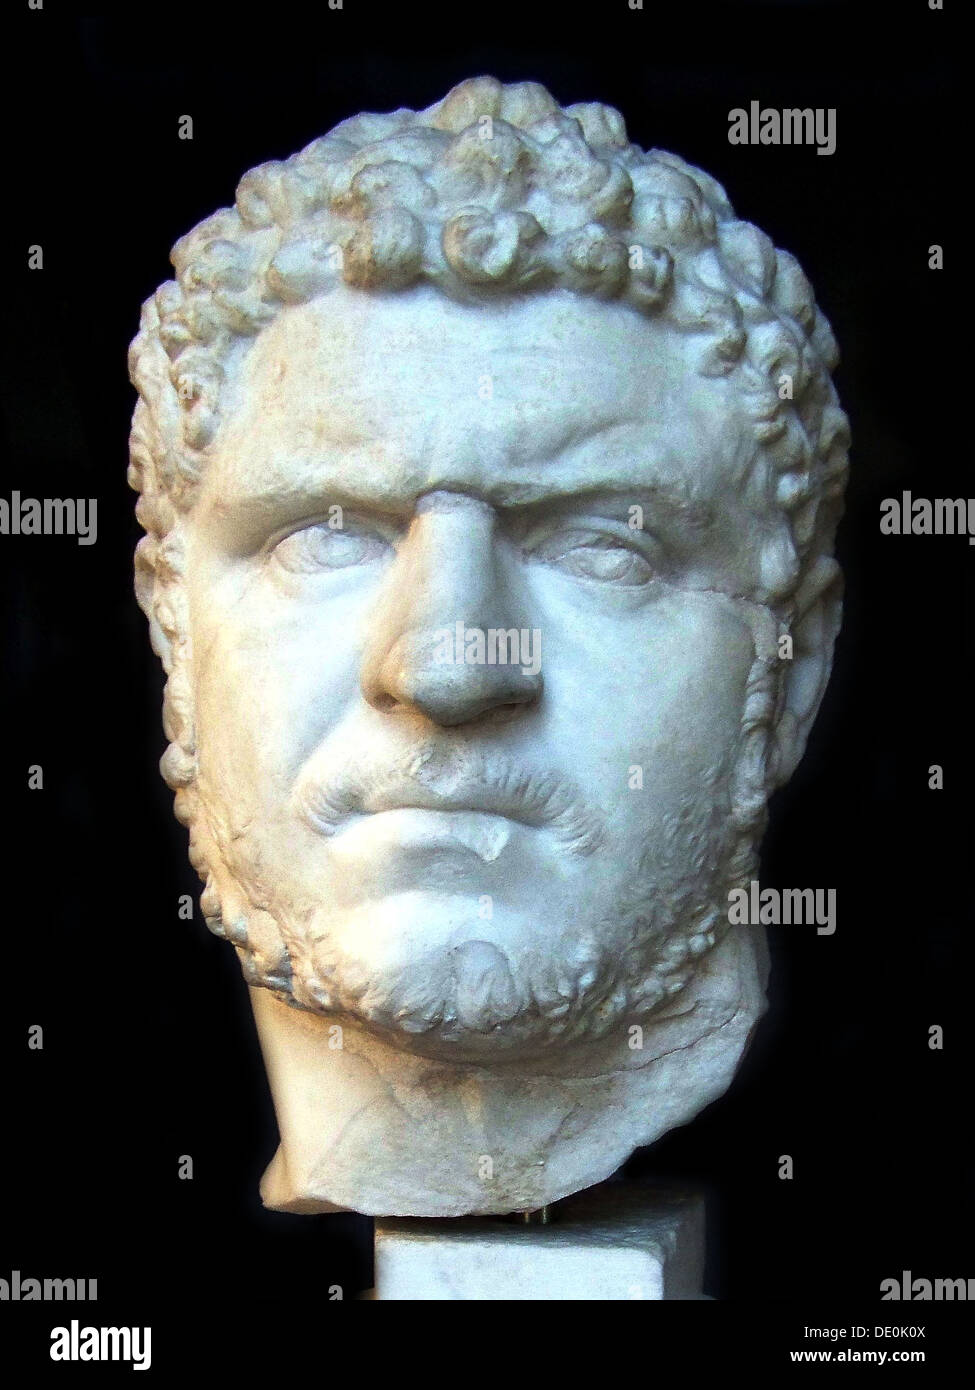 Caracalla, 3rd cen. AD. Artist: Art of Ancient Rome, Classical sculpture - Stock Image